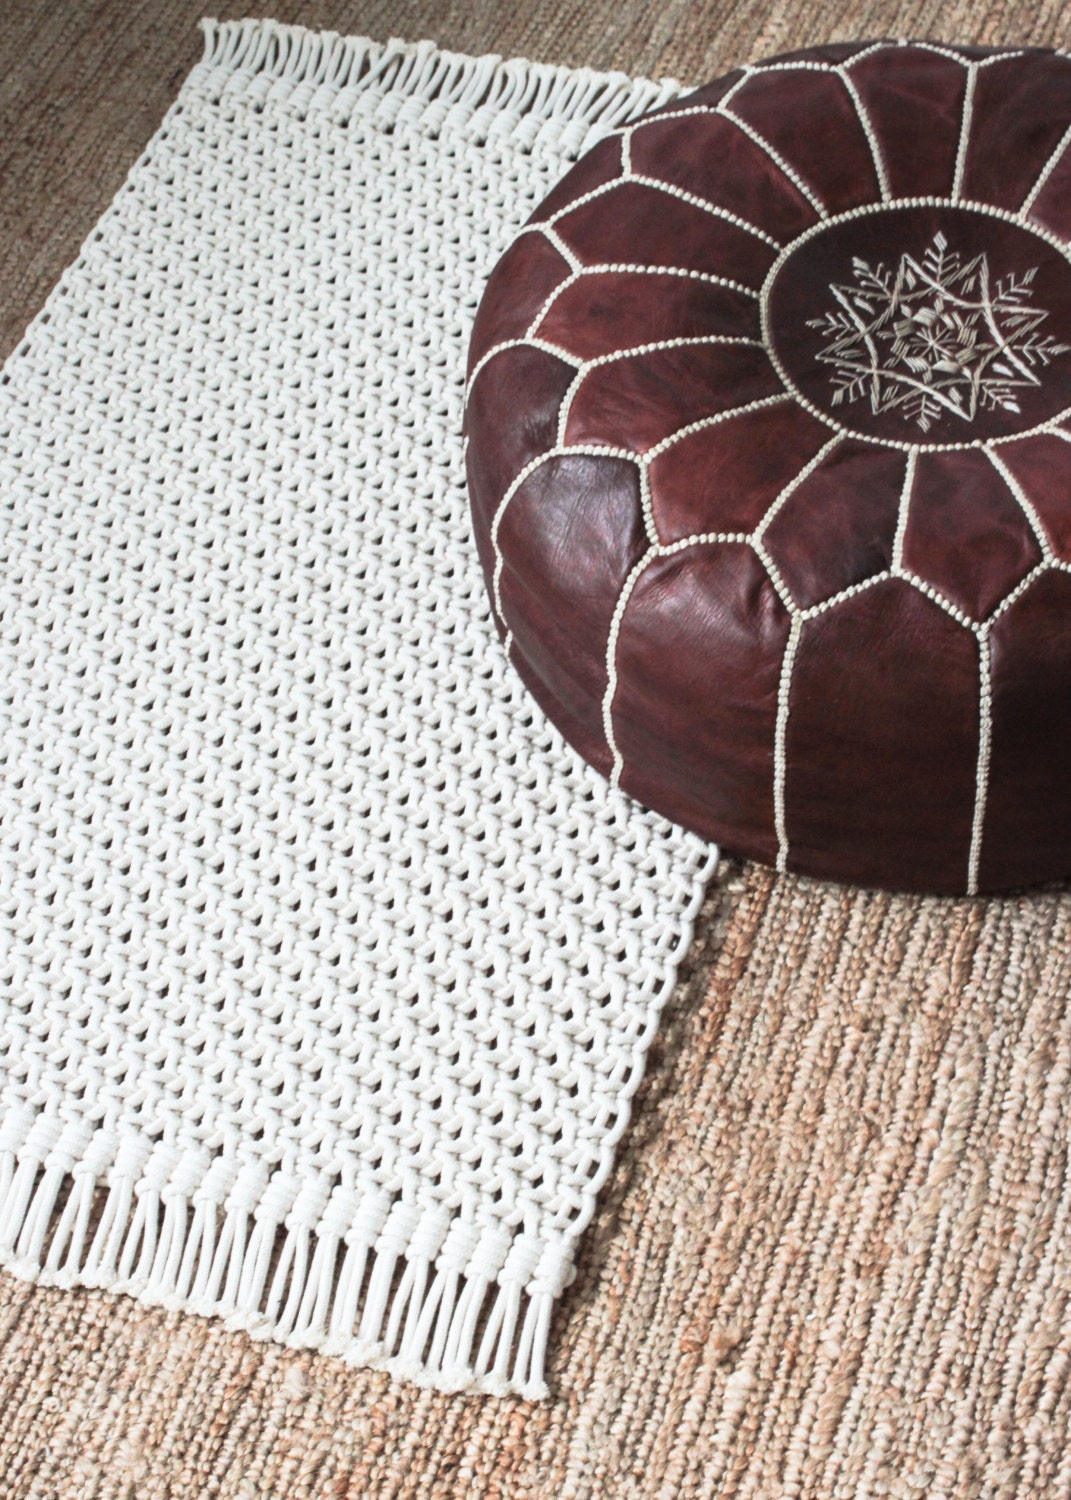 macrame rugs macrame rug 100 cotton cord in ecru 160